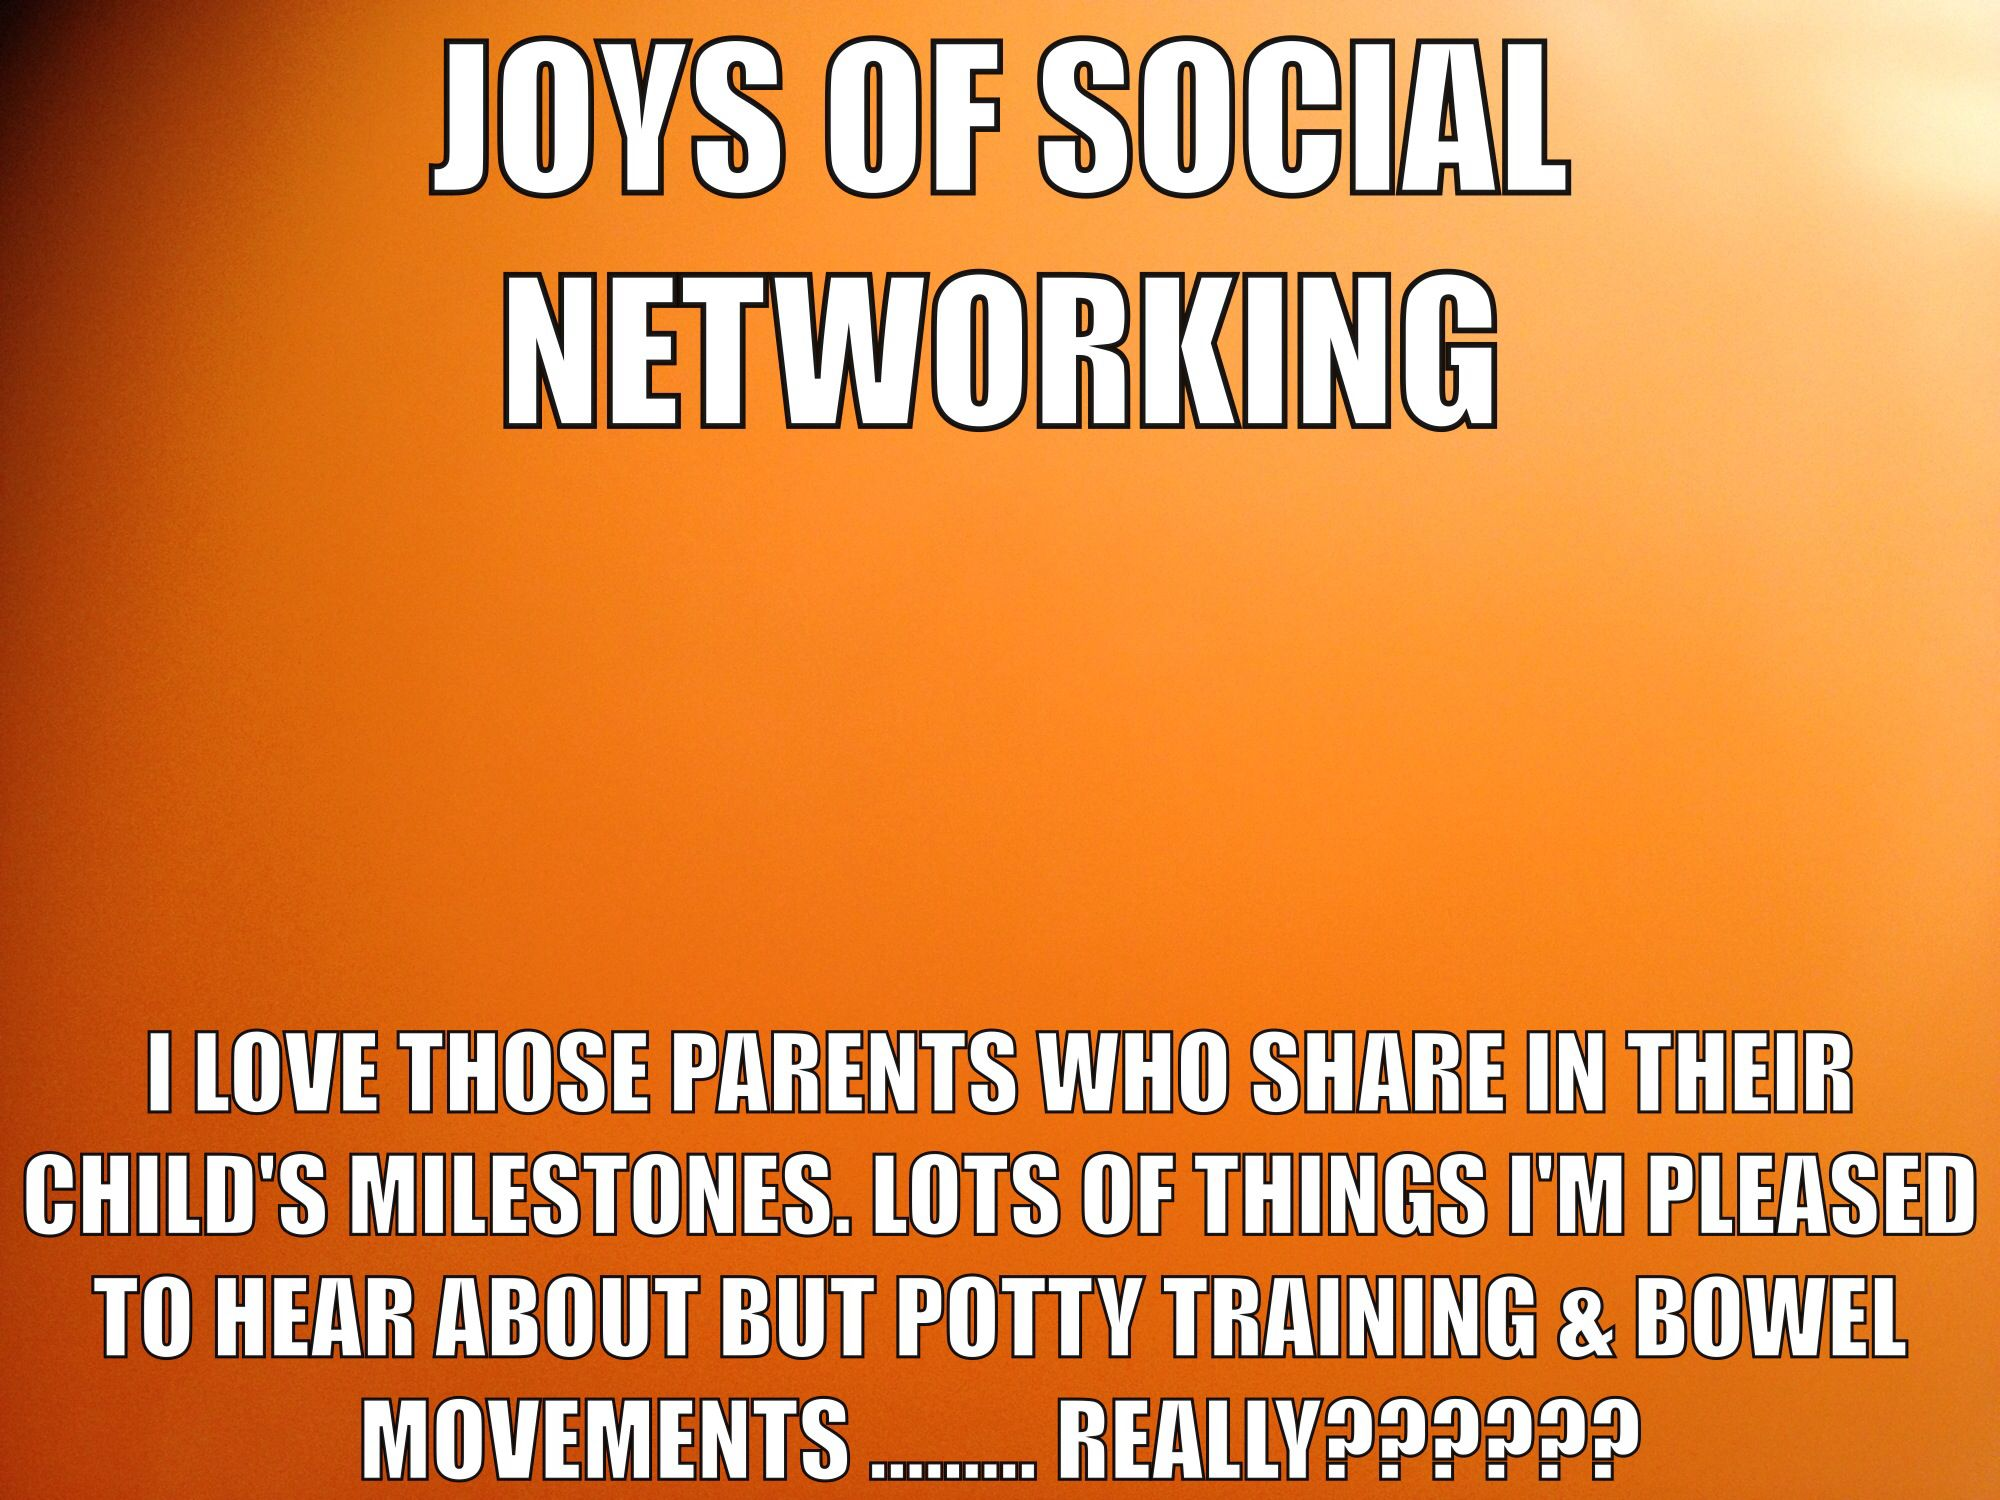 Funny Social Networking Quotes Networking Quotes Social